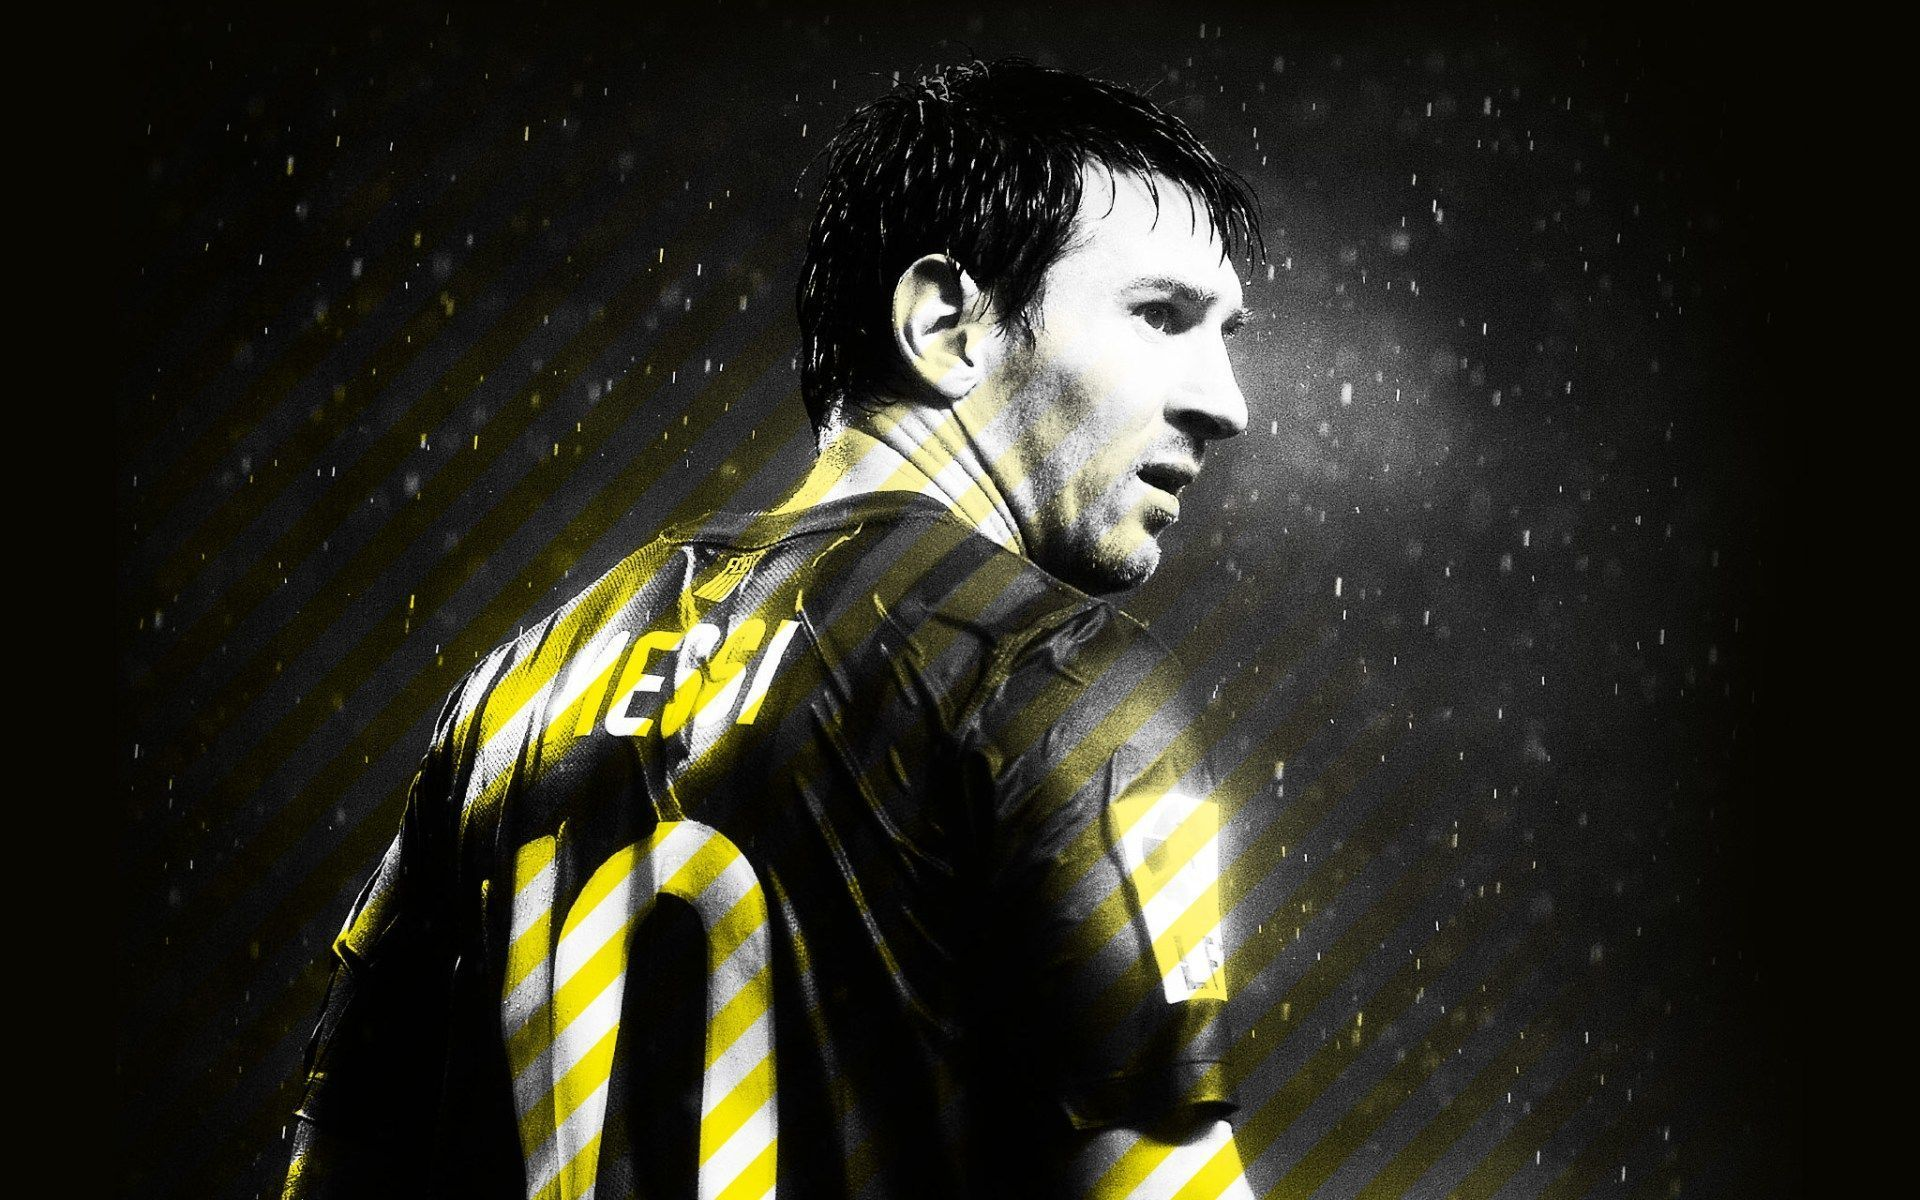 Lionel Messi Hd Wallpapers Lionel Messi Wallpapers Lionel Messi Messi